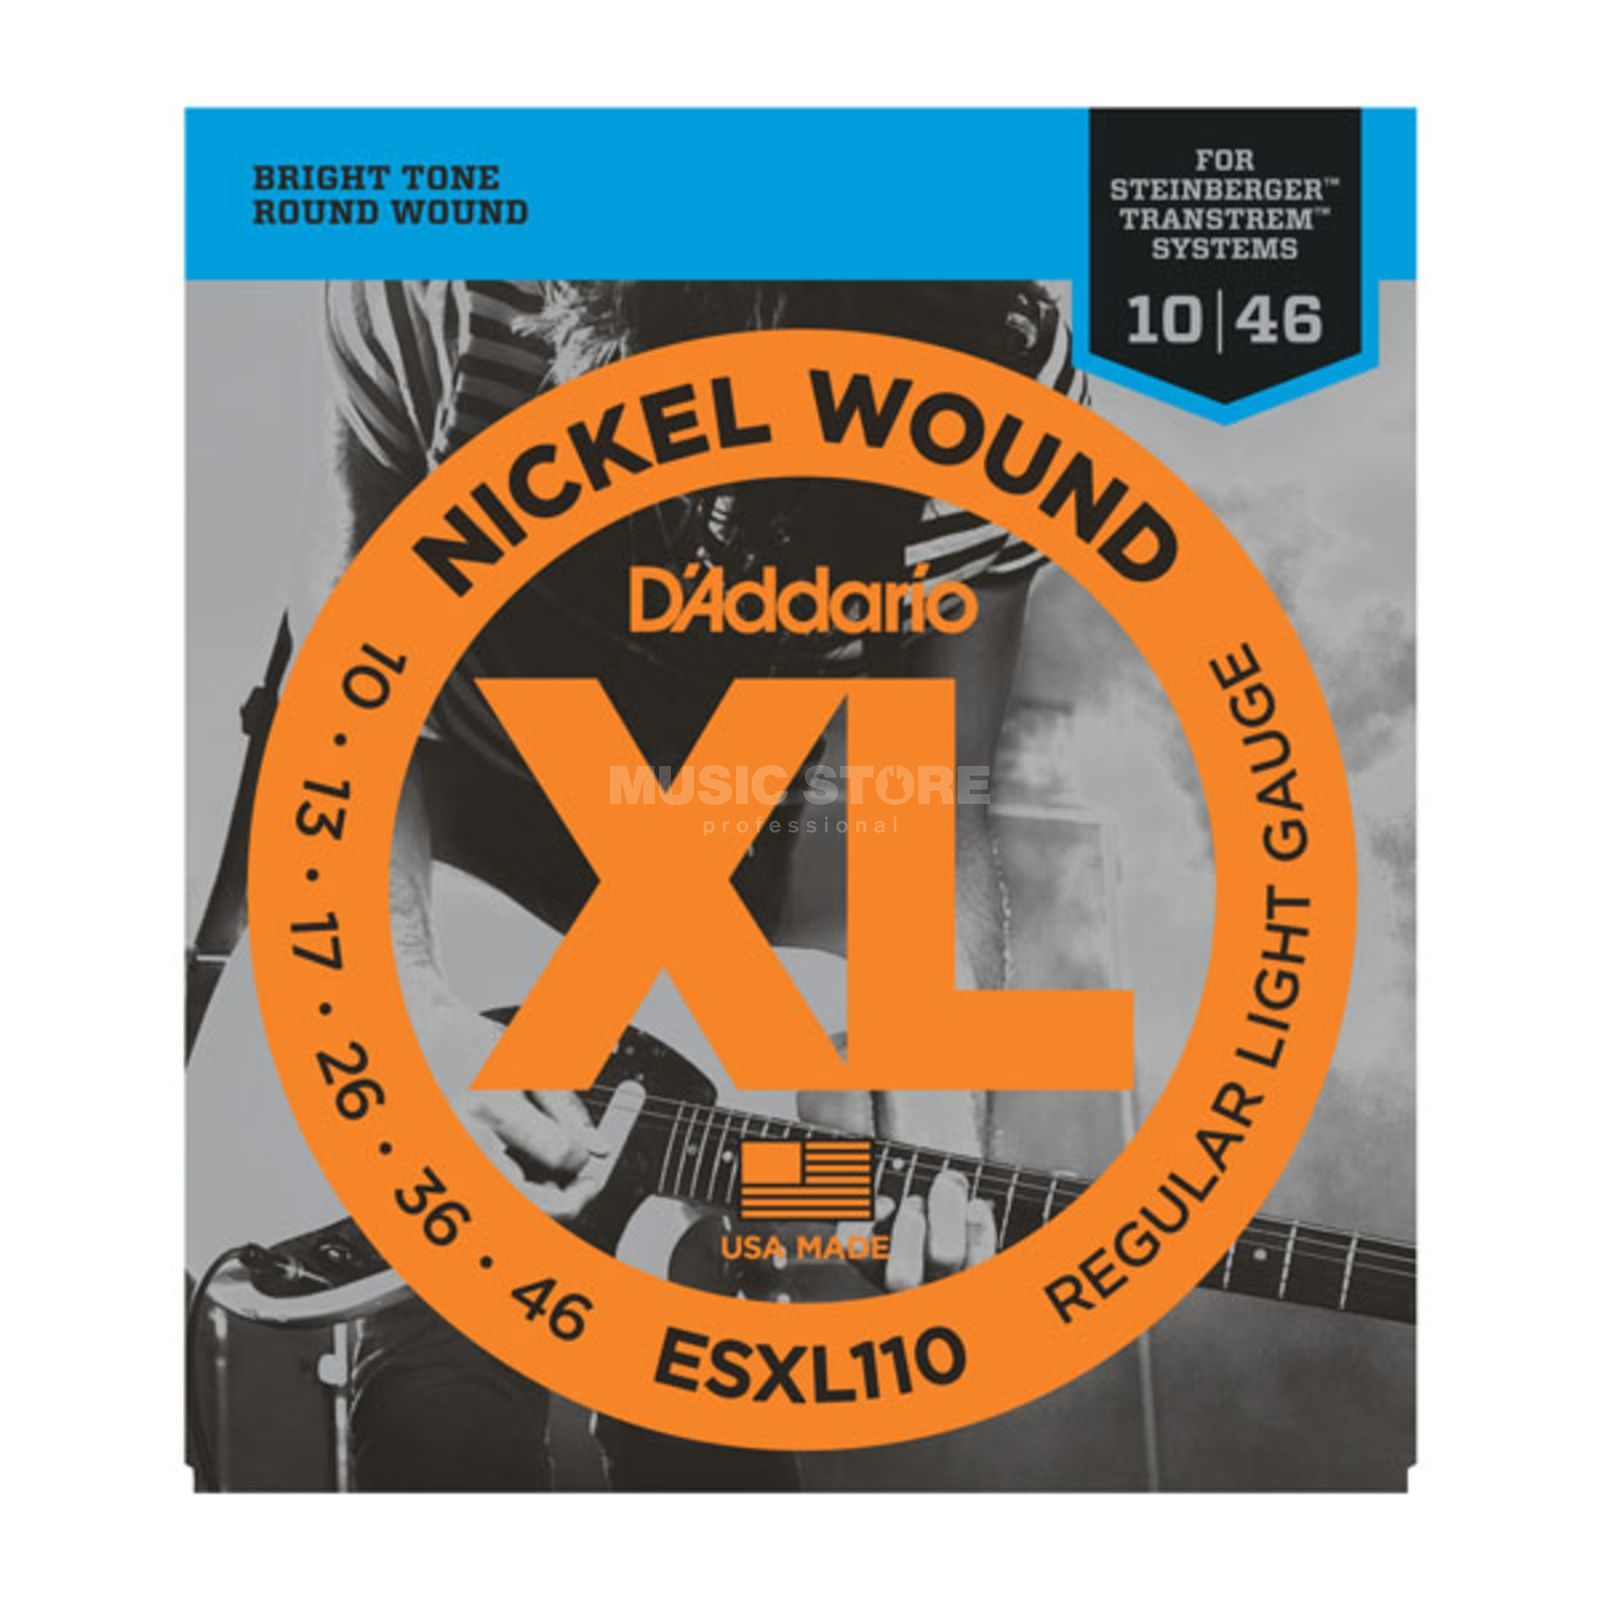 D'Addario Double Ball Strings ESXL110 10-46 Nickel Wound Produktbillede